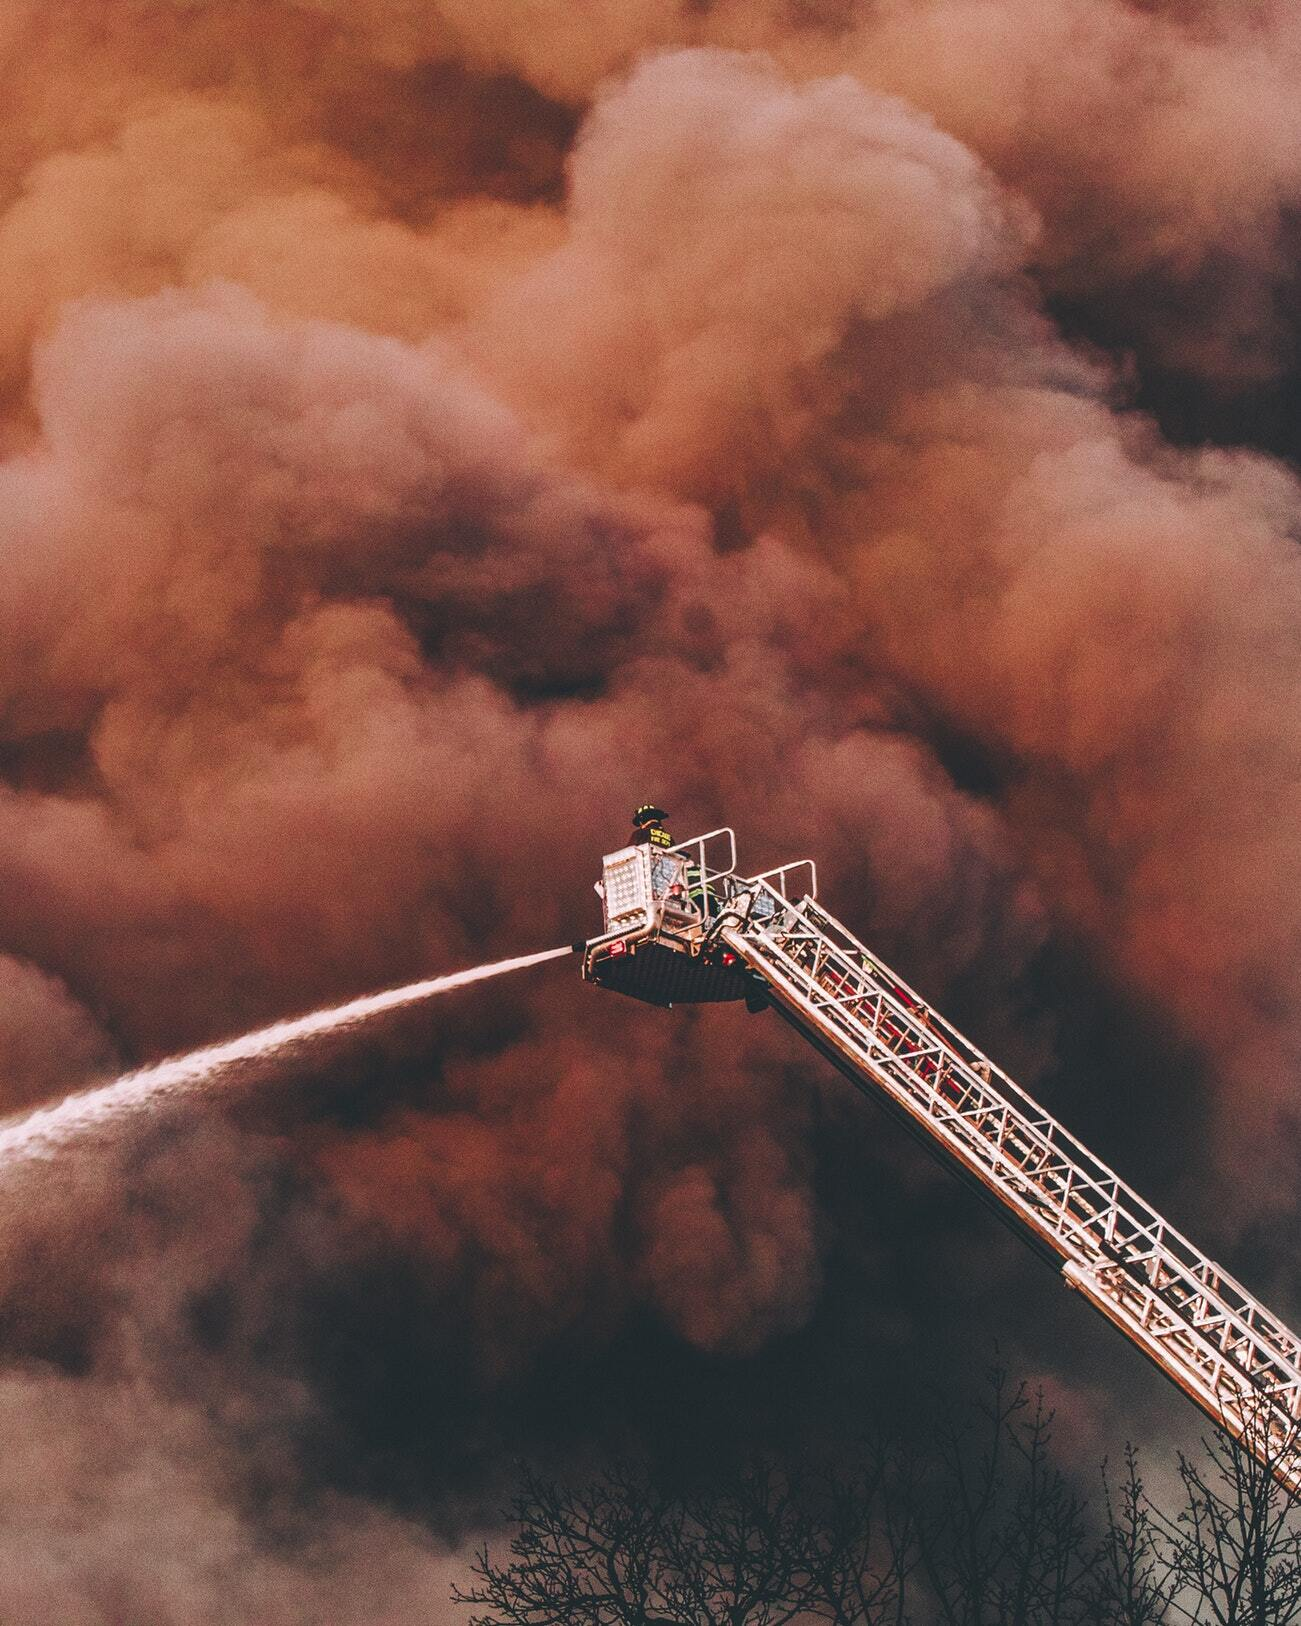 Photo of a fire department's crane spraying water against a backdrop of smoke from a raging fire